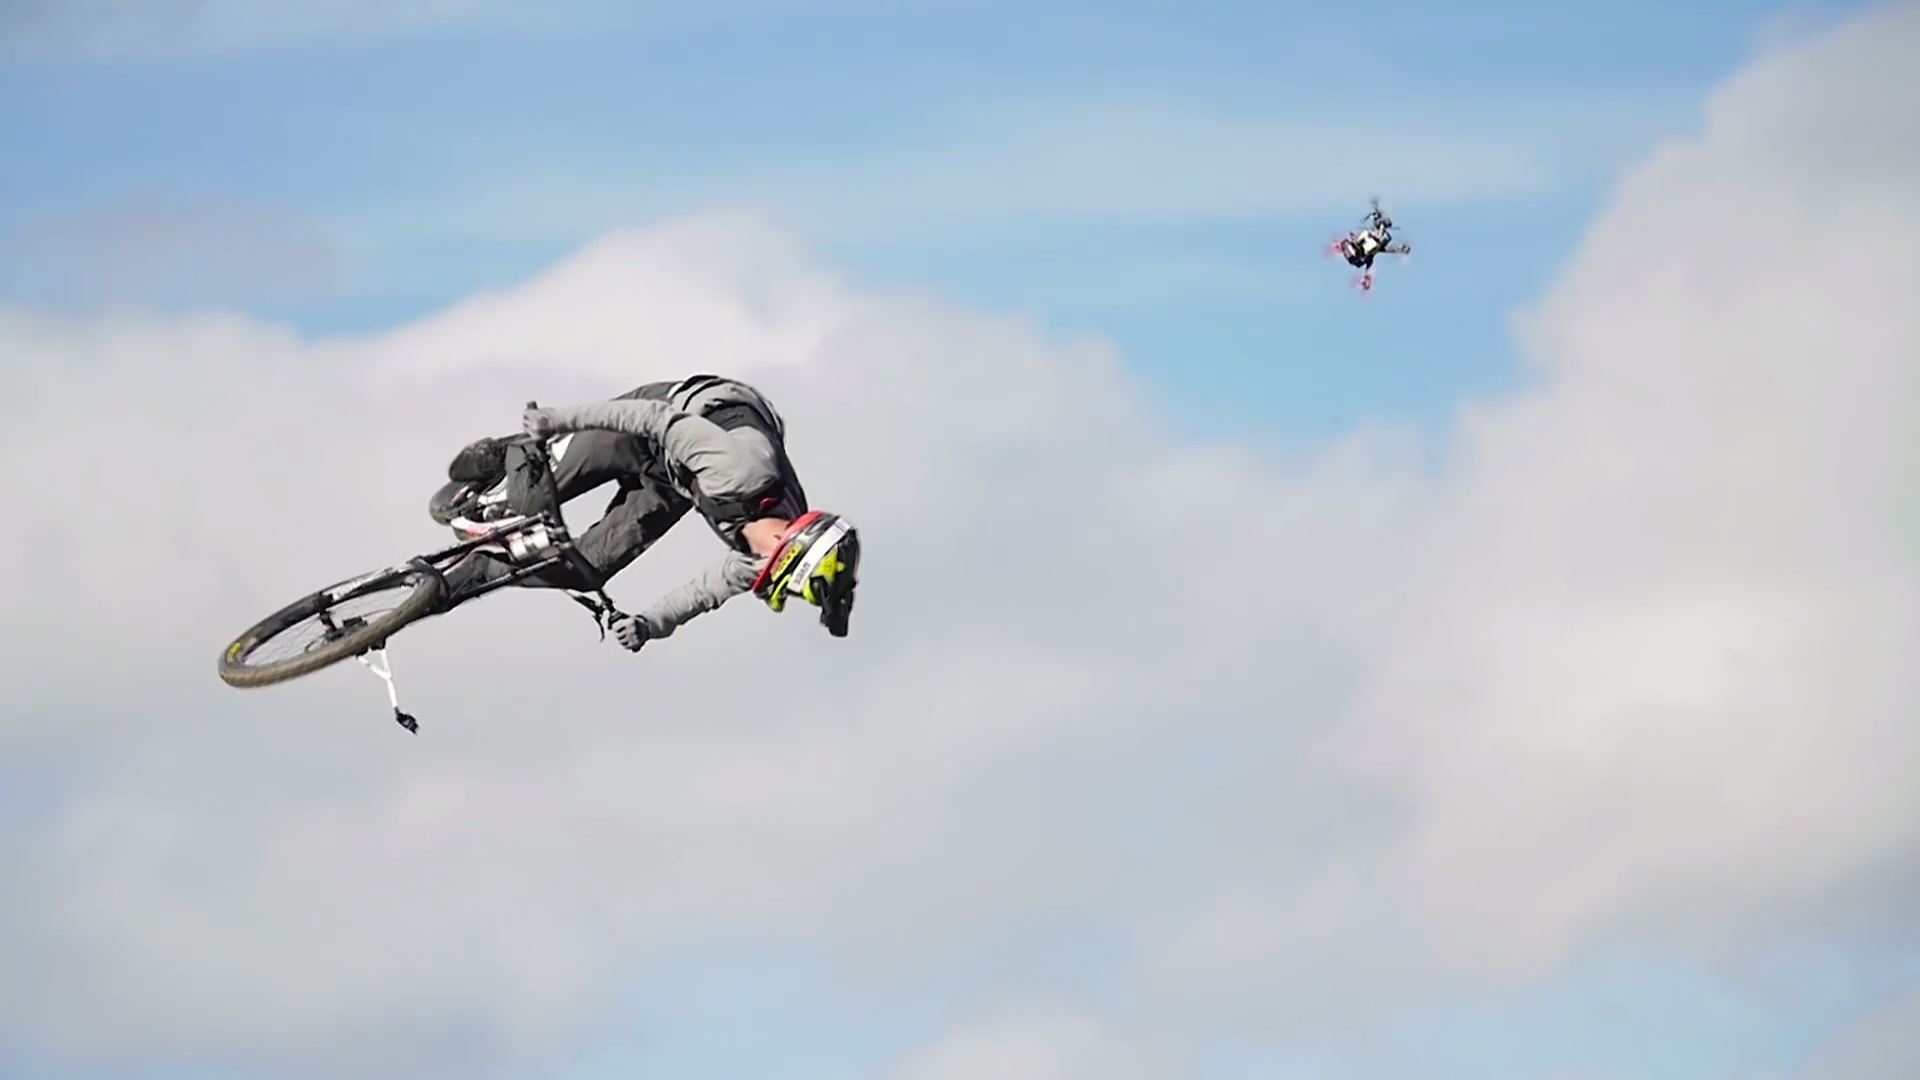 FPV Racing Drones + Nine Knights Slopestyle = AWESOME